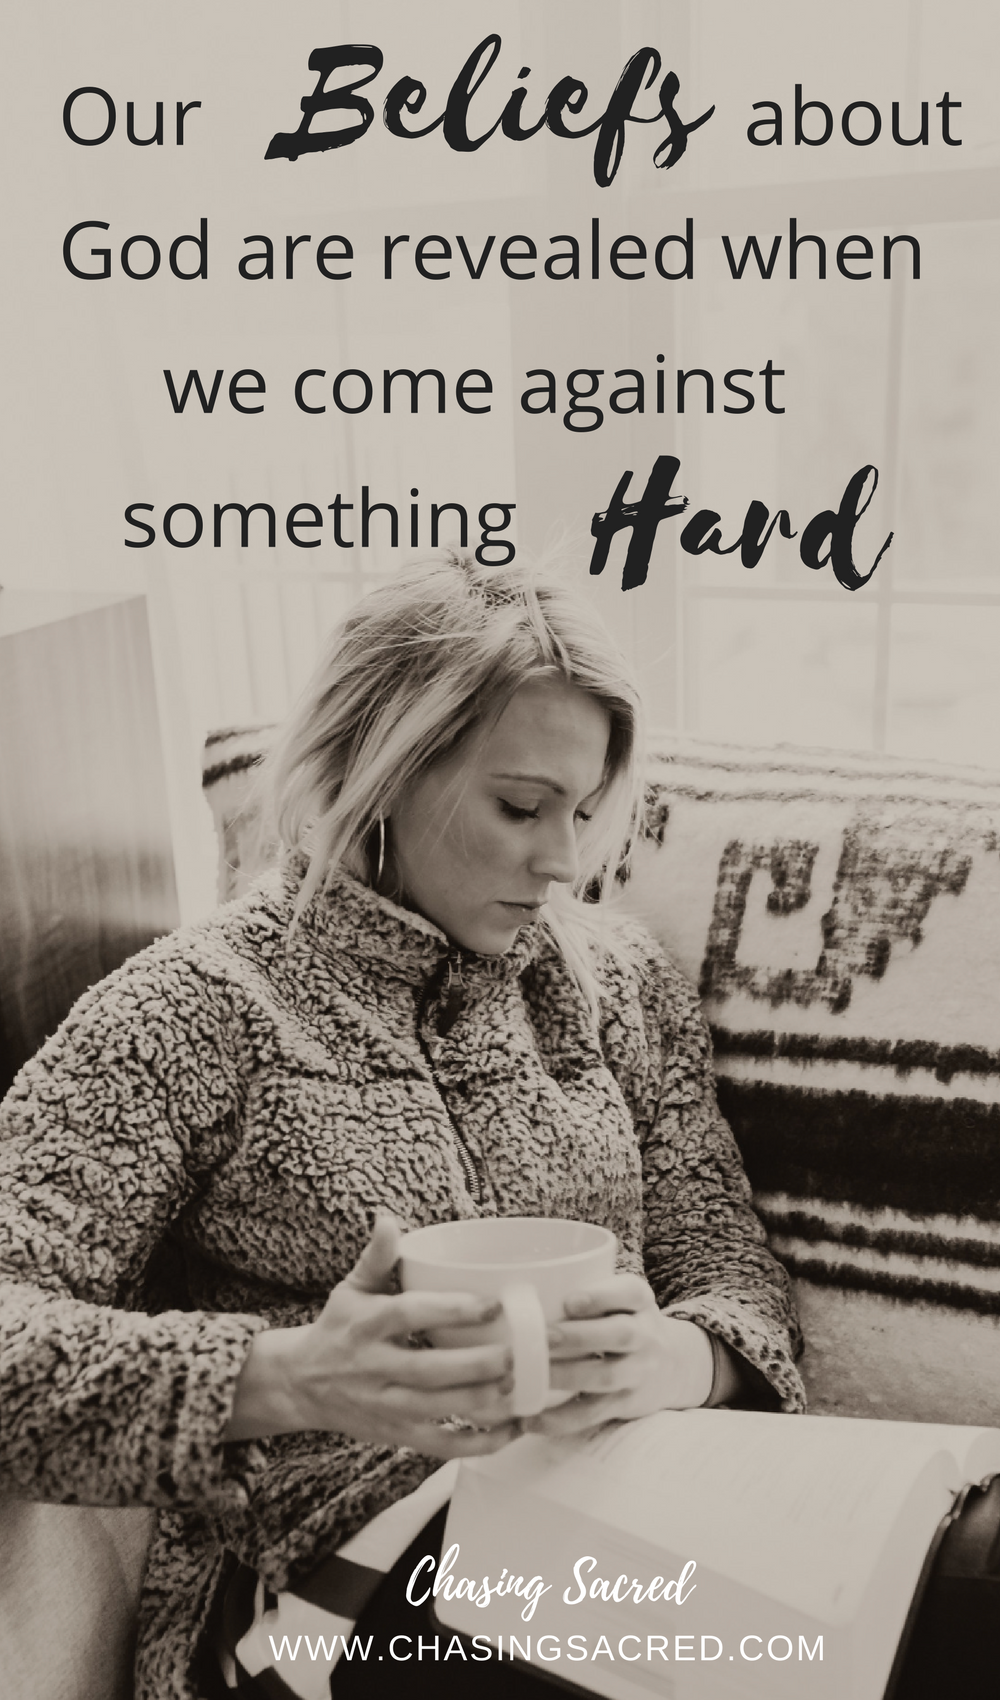 Our beliefs about God are revealed when we come against something hard